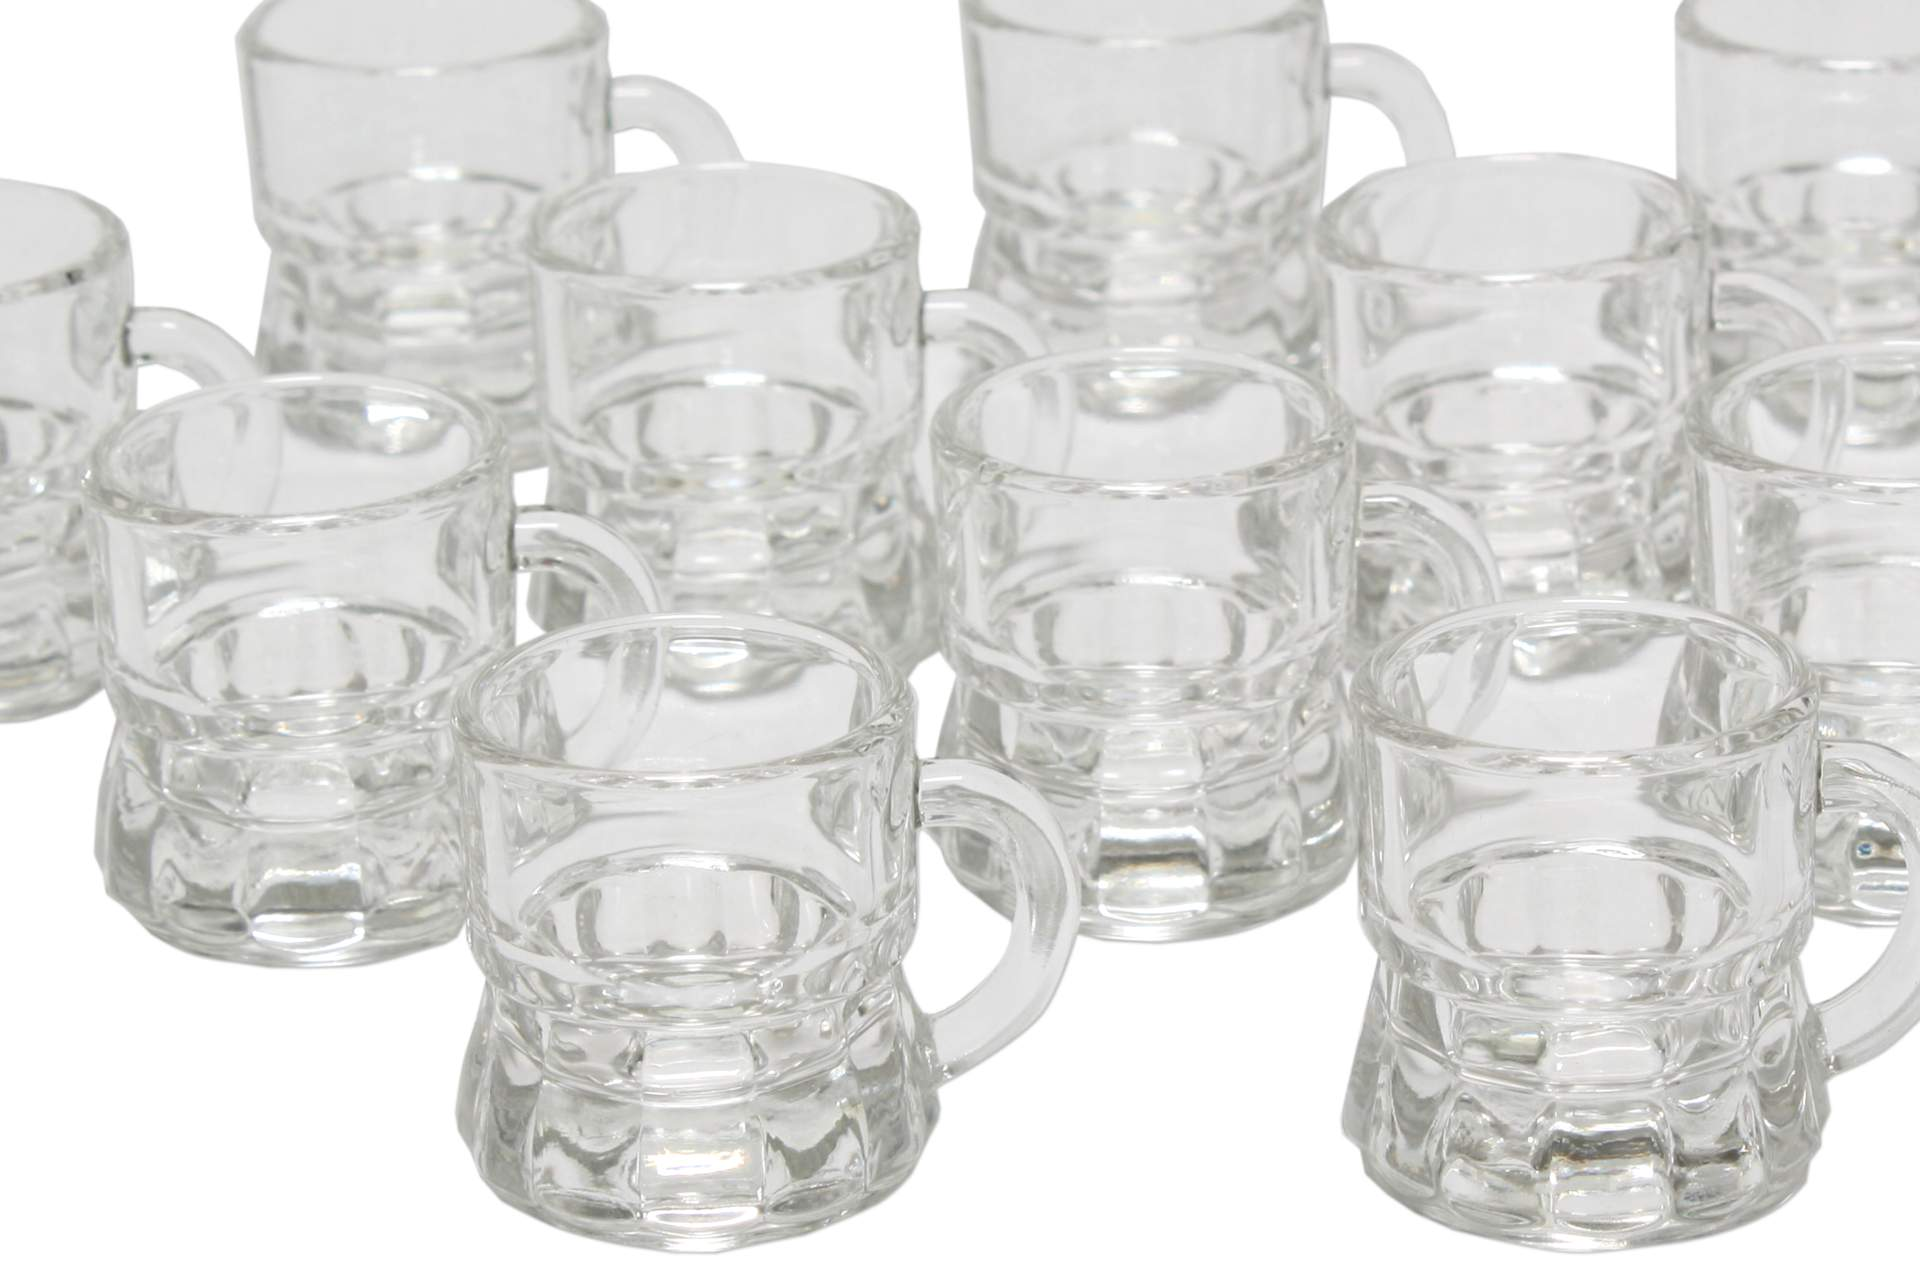 schnapsglas mit henkel 12 er pack 2 cl schluck schnaps spirituosen glas stamper ebay. Black Bedroom Furniture Sets. Home Design Ideas